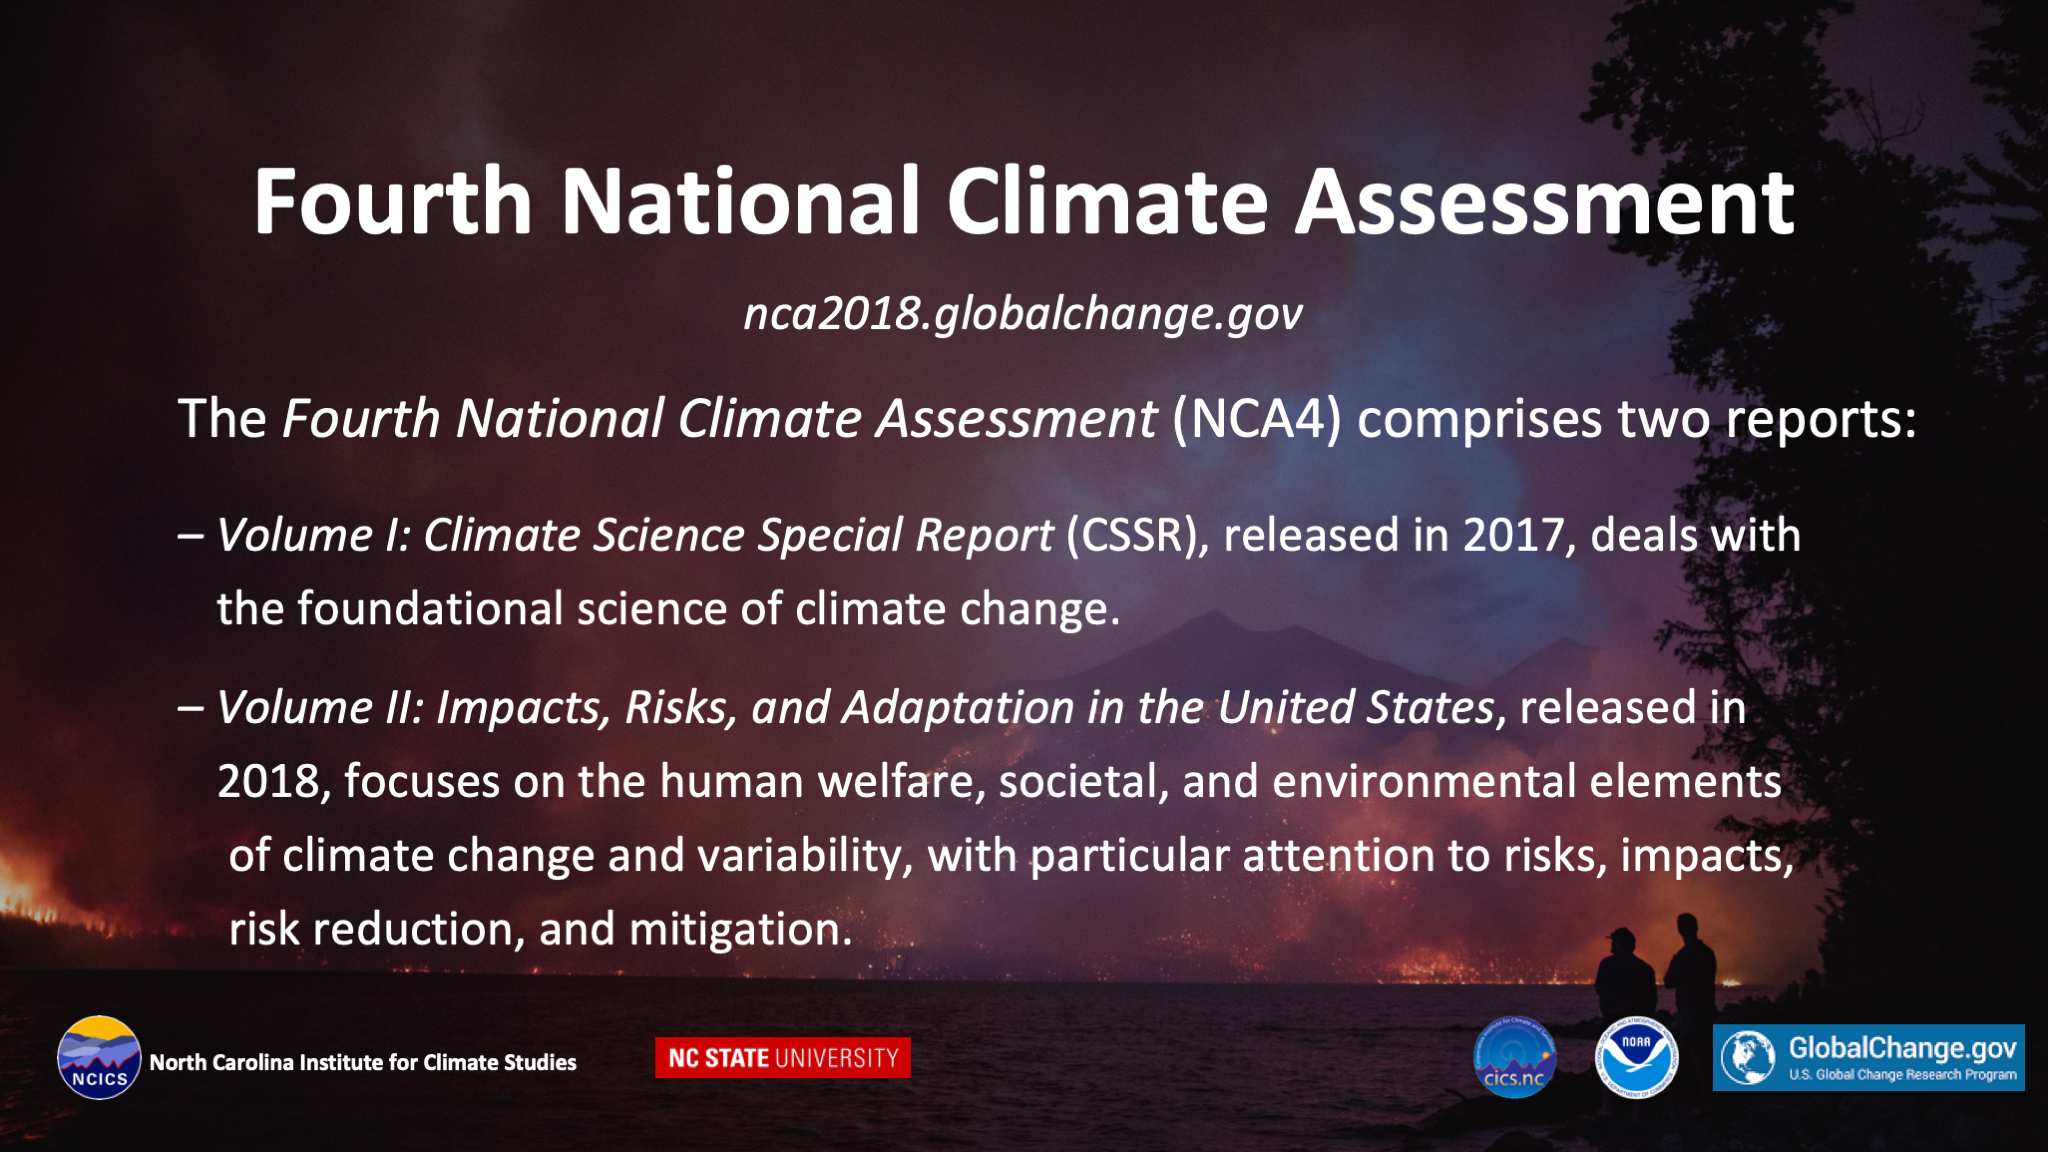 4th National Climate Assessment